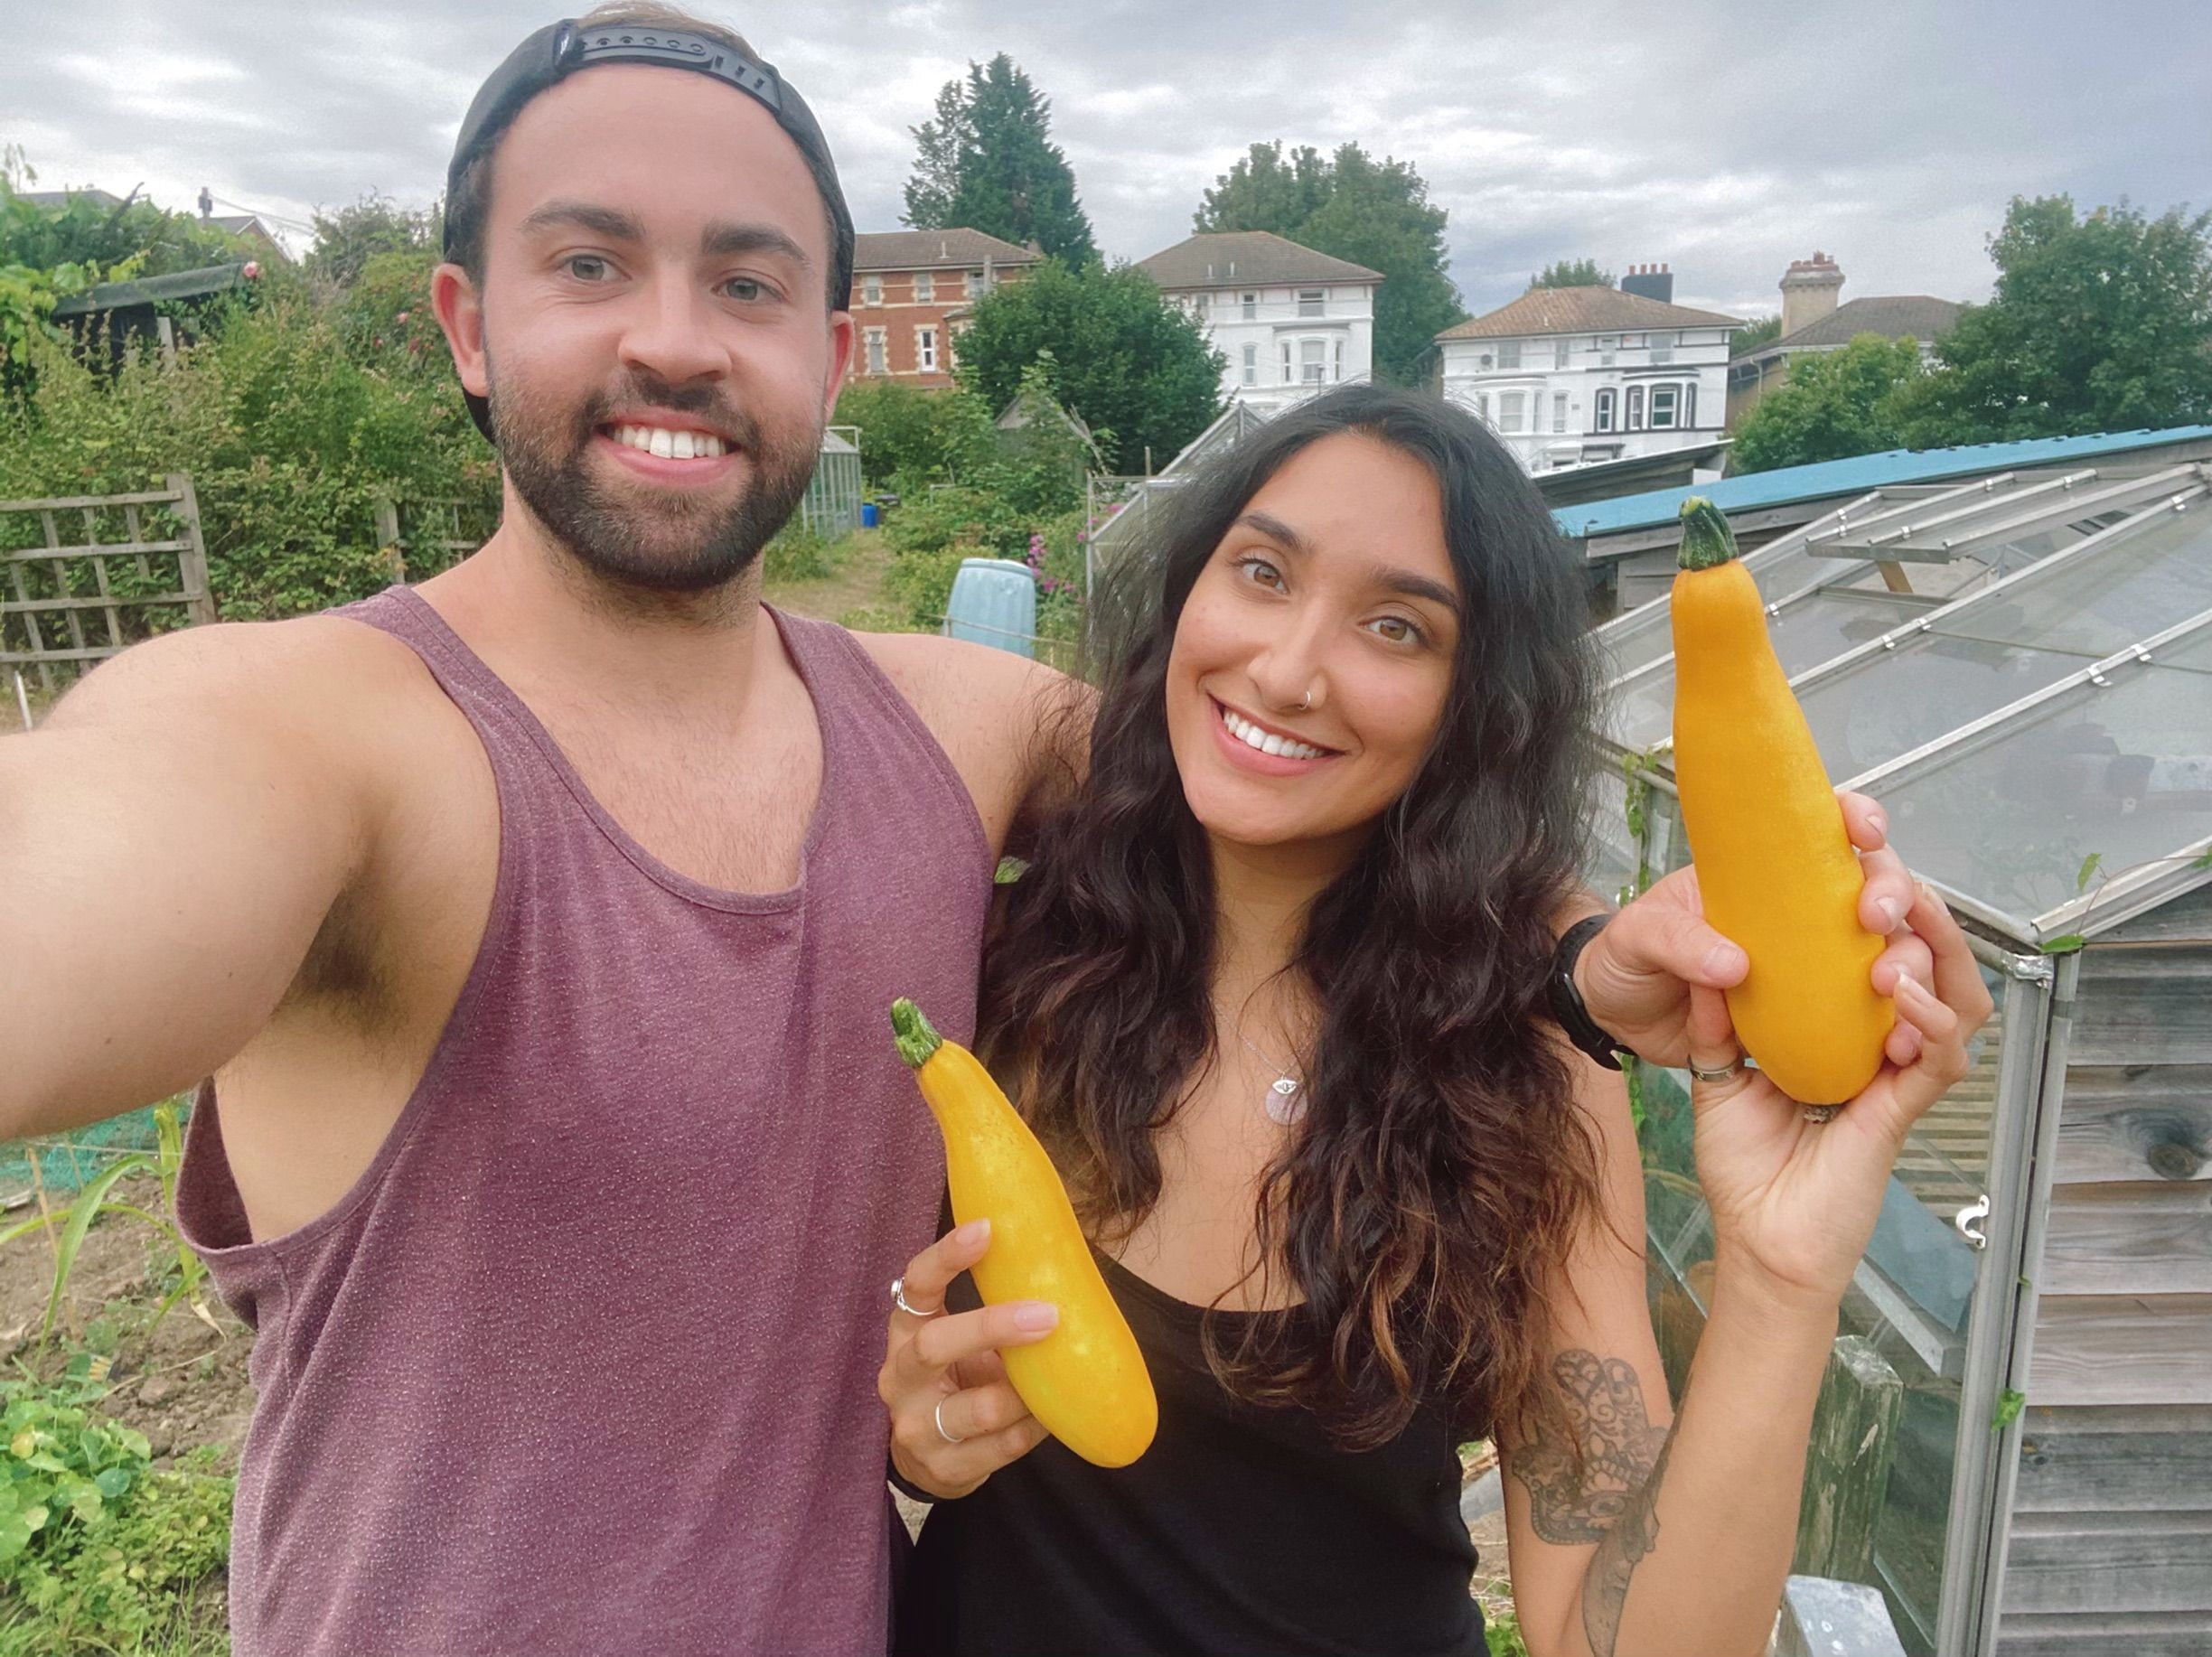 A millennial gardener: 'From a rickety PVC greenhouse to my first allotment plot'